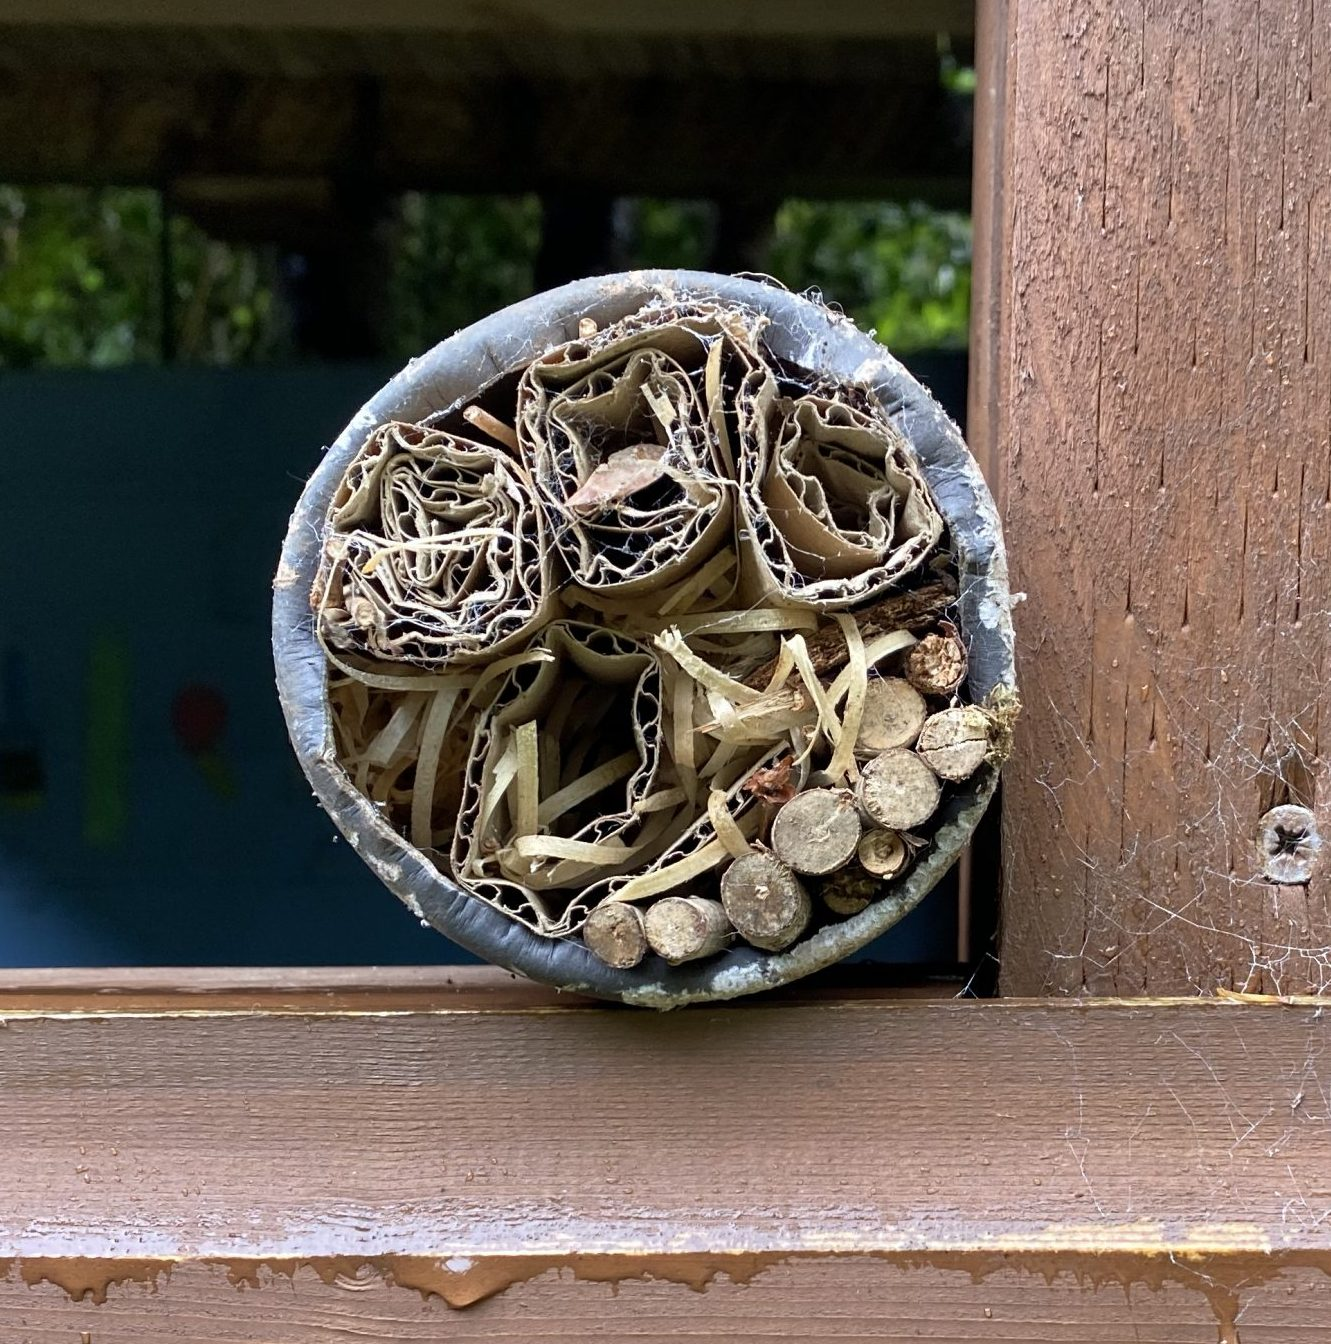 A bug hotel made of sticks and bamboo in a plastic bottle